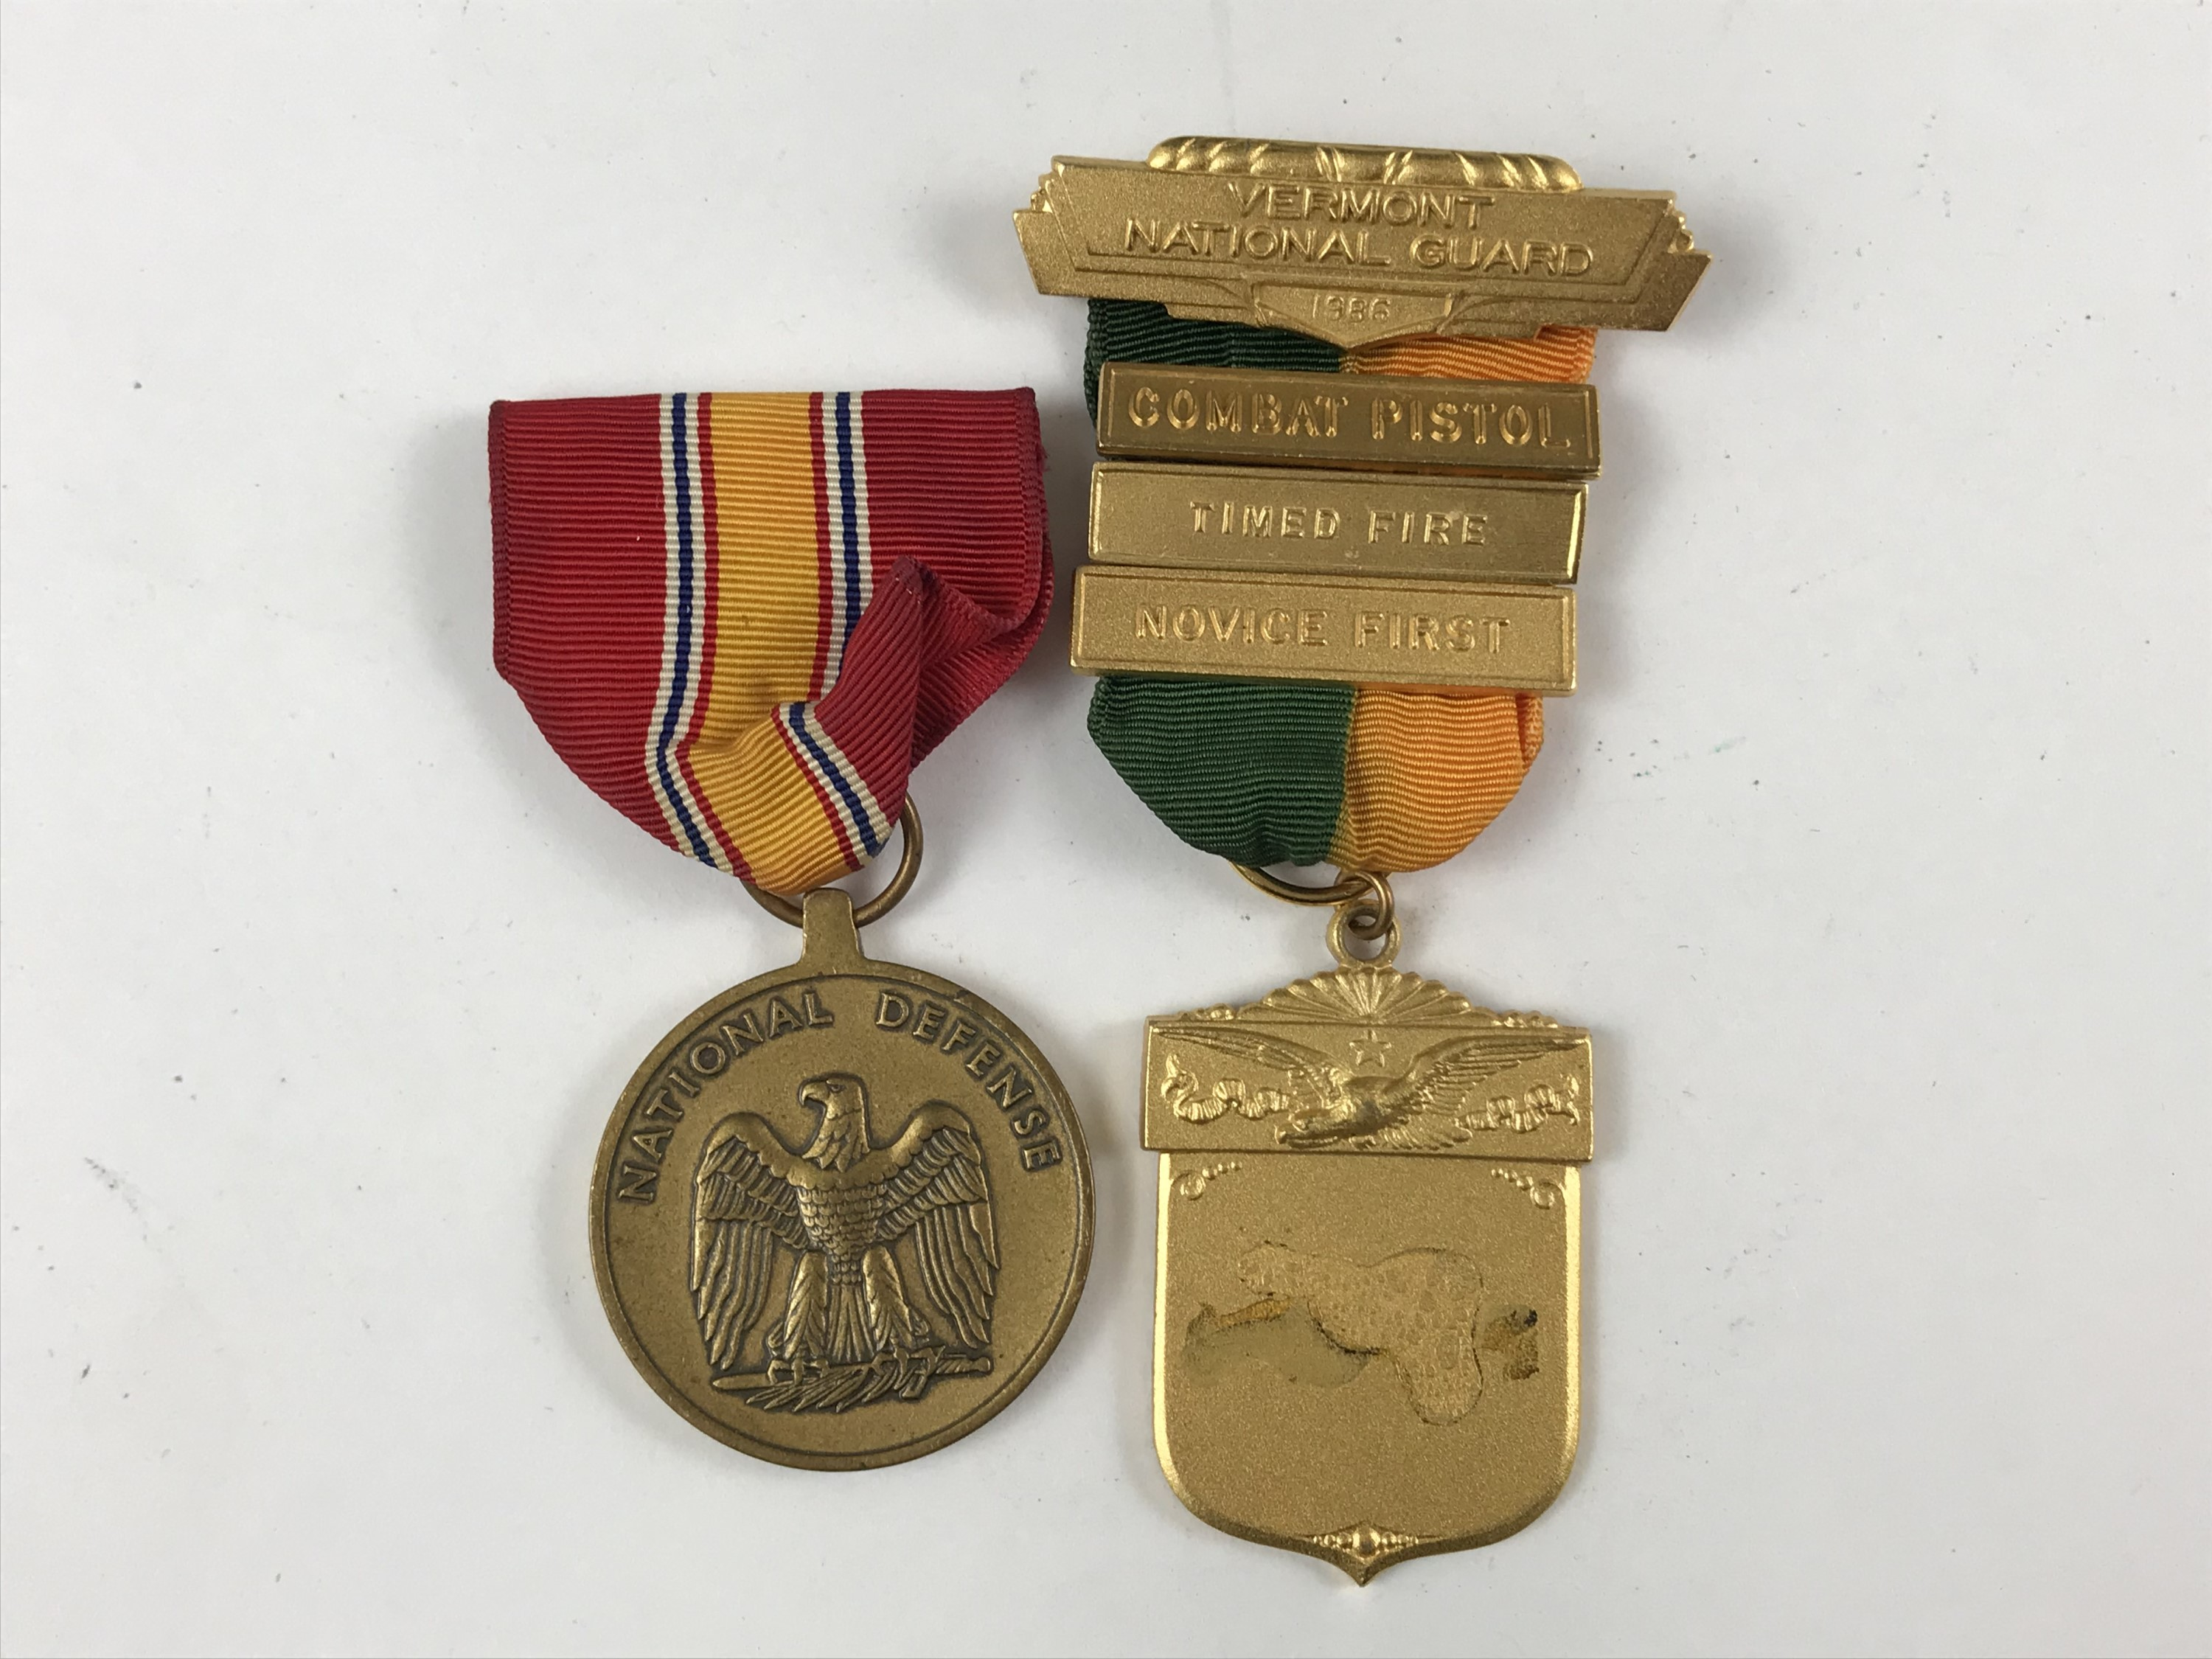 Lot 3 - An American National Defence medal together with a Vermont National Guard medal